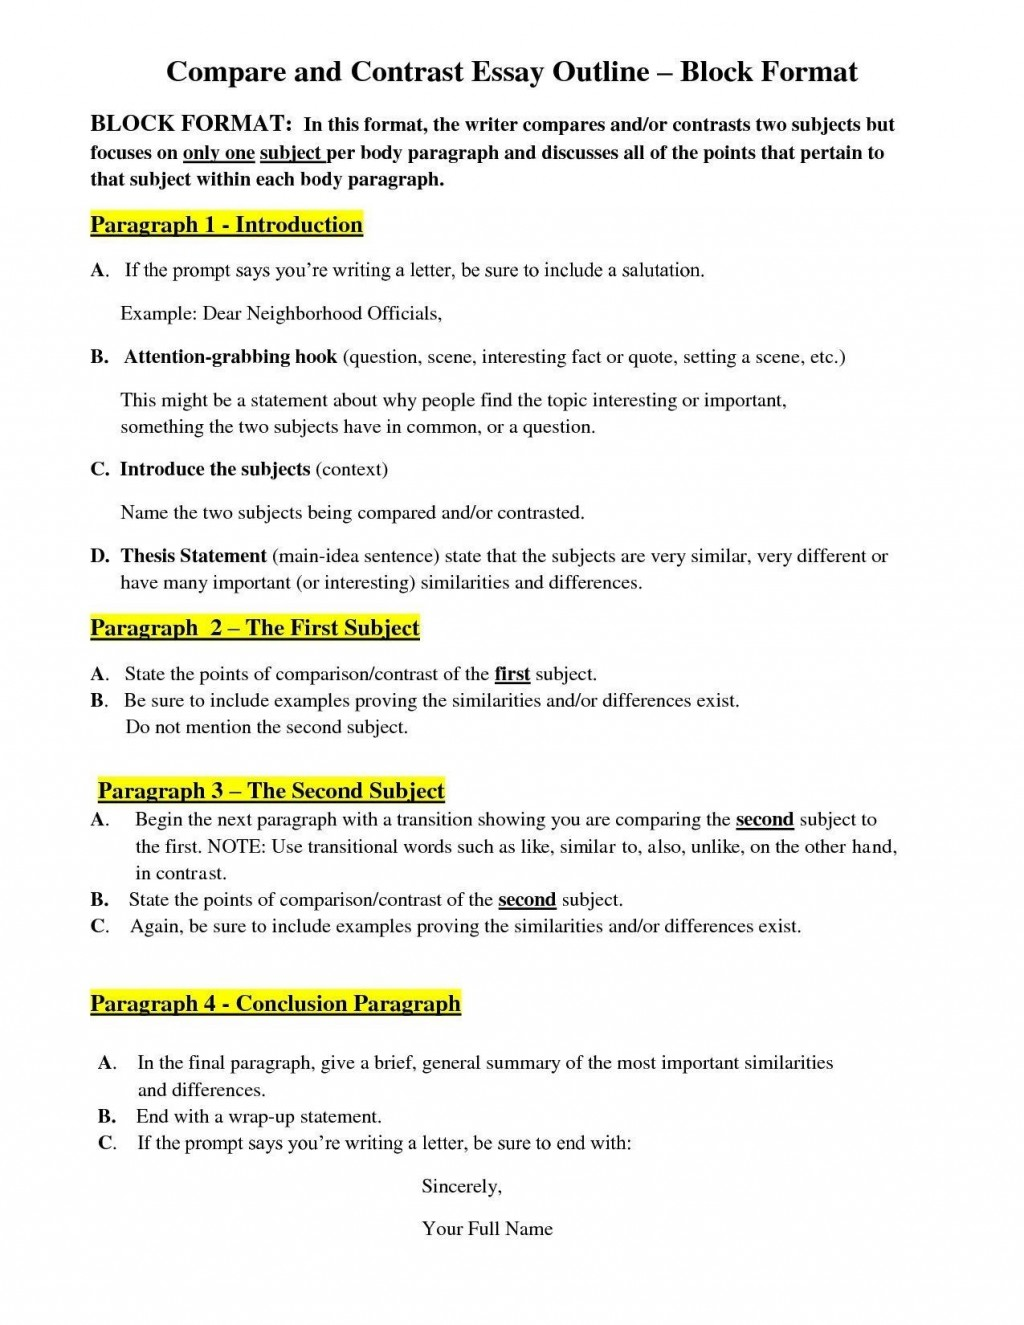 014 Essay Examplempare Andntrastmparison Best Examples Of Scenario In 6th Grade An Goo 3rd Food 5th Middle School Block Format Pdf High 4th Vs Striking Compare And Contrast Example Fourth 7th Large